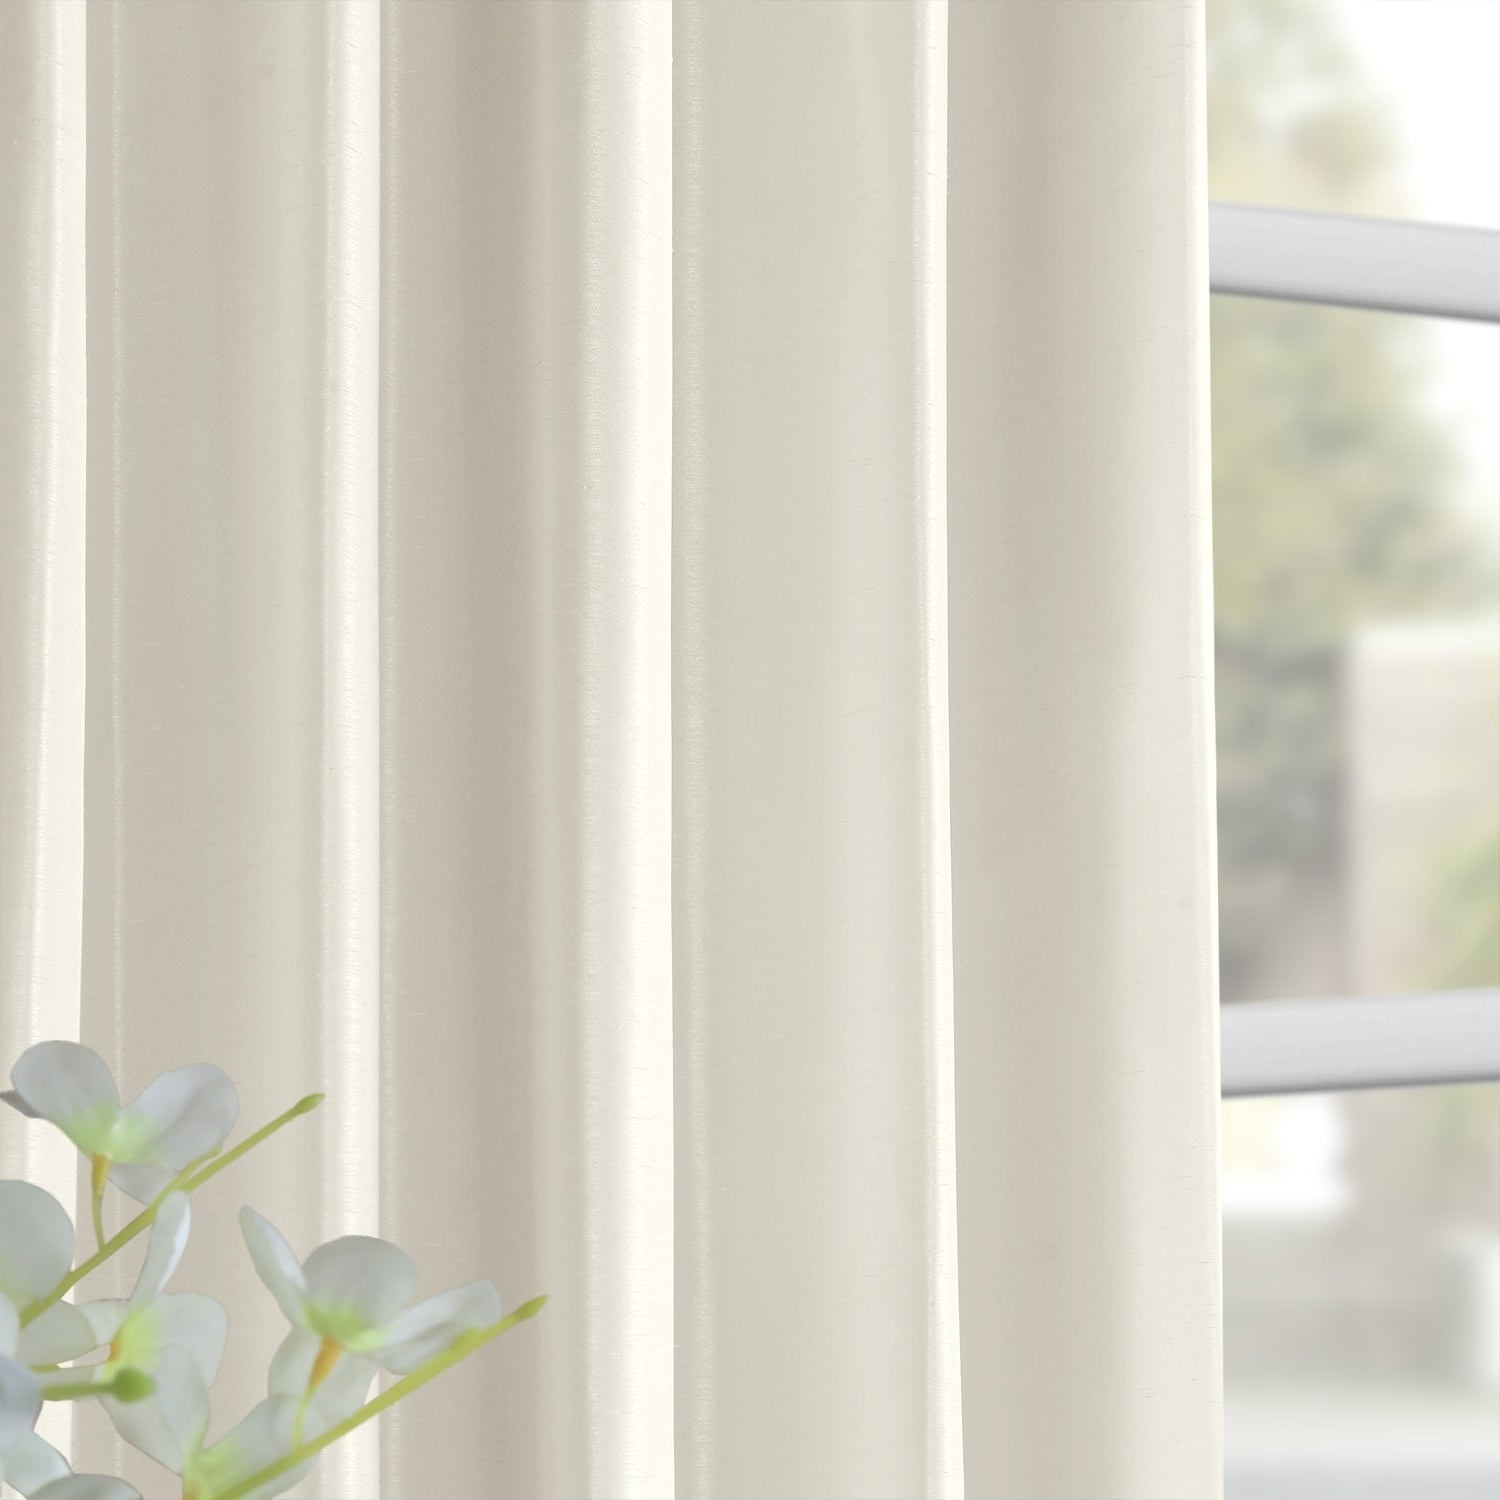 Preferred Off White Vintage Faux Textured Silk Curtains Pertaining To Exclusive Fabrics Off White Vintage Faux Textured Dupioni Silk Curtain (View 12 of 20)